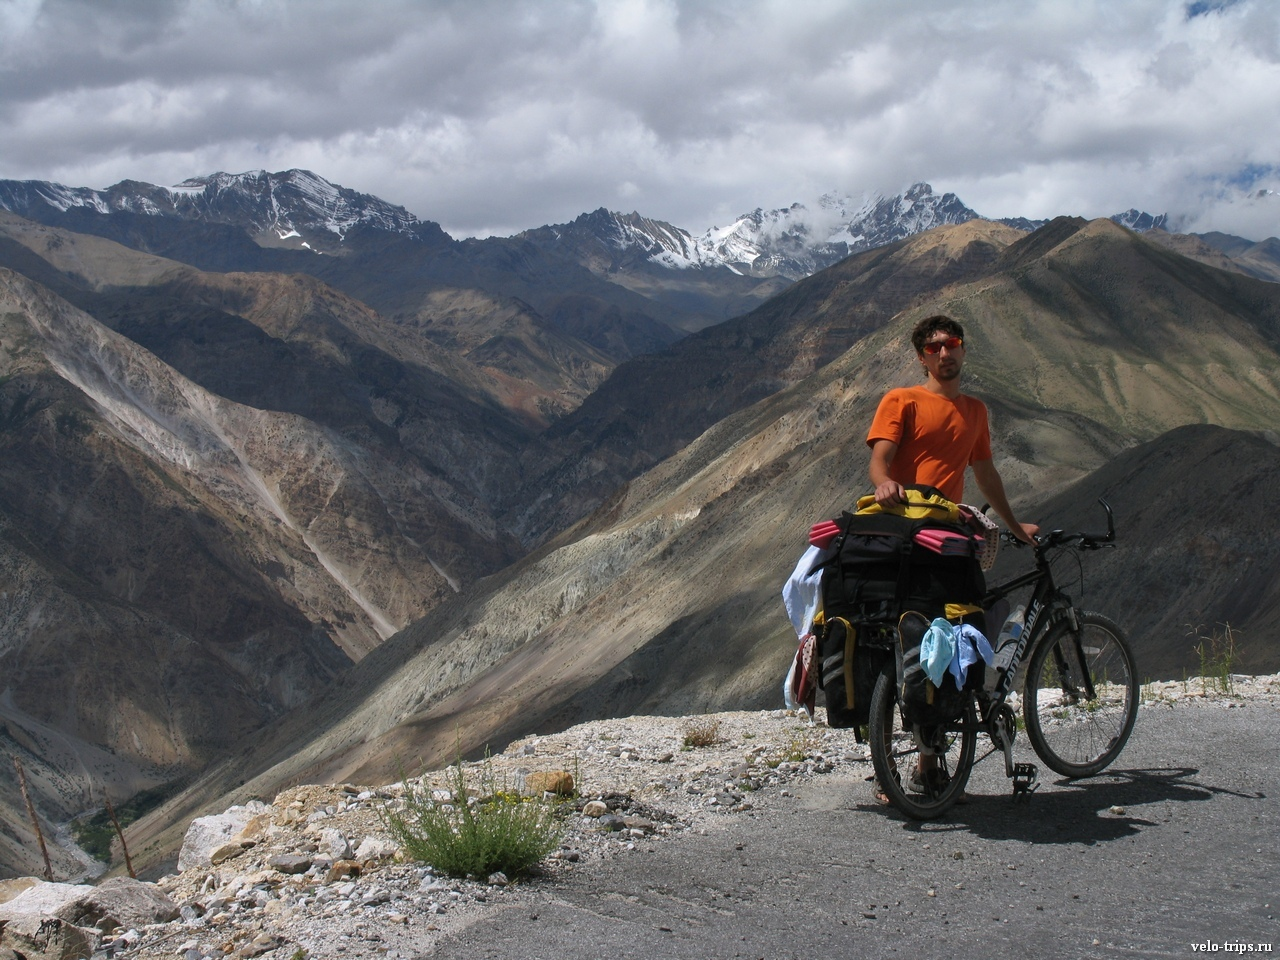 Sasha with Cannondale in Himalaya mountains